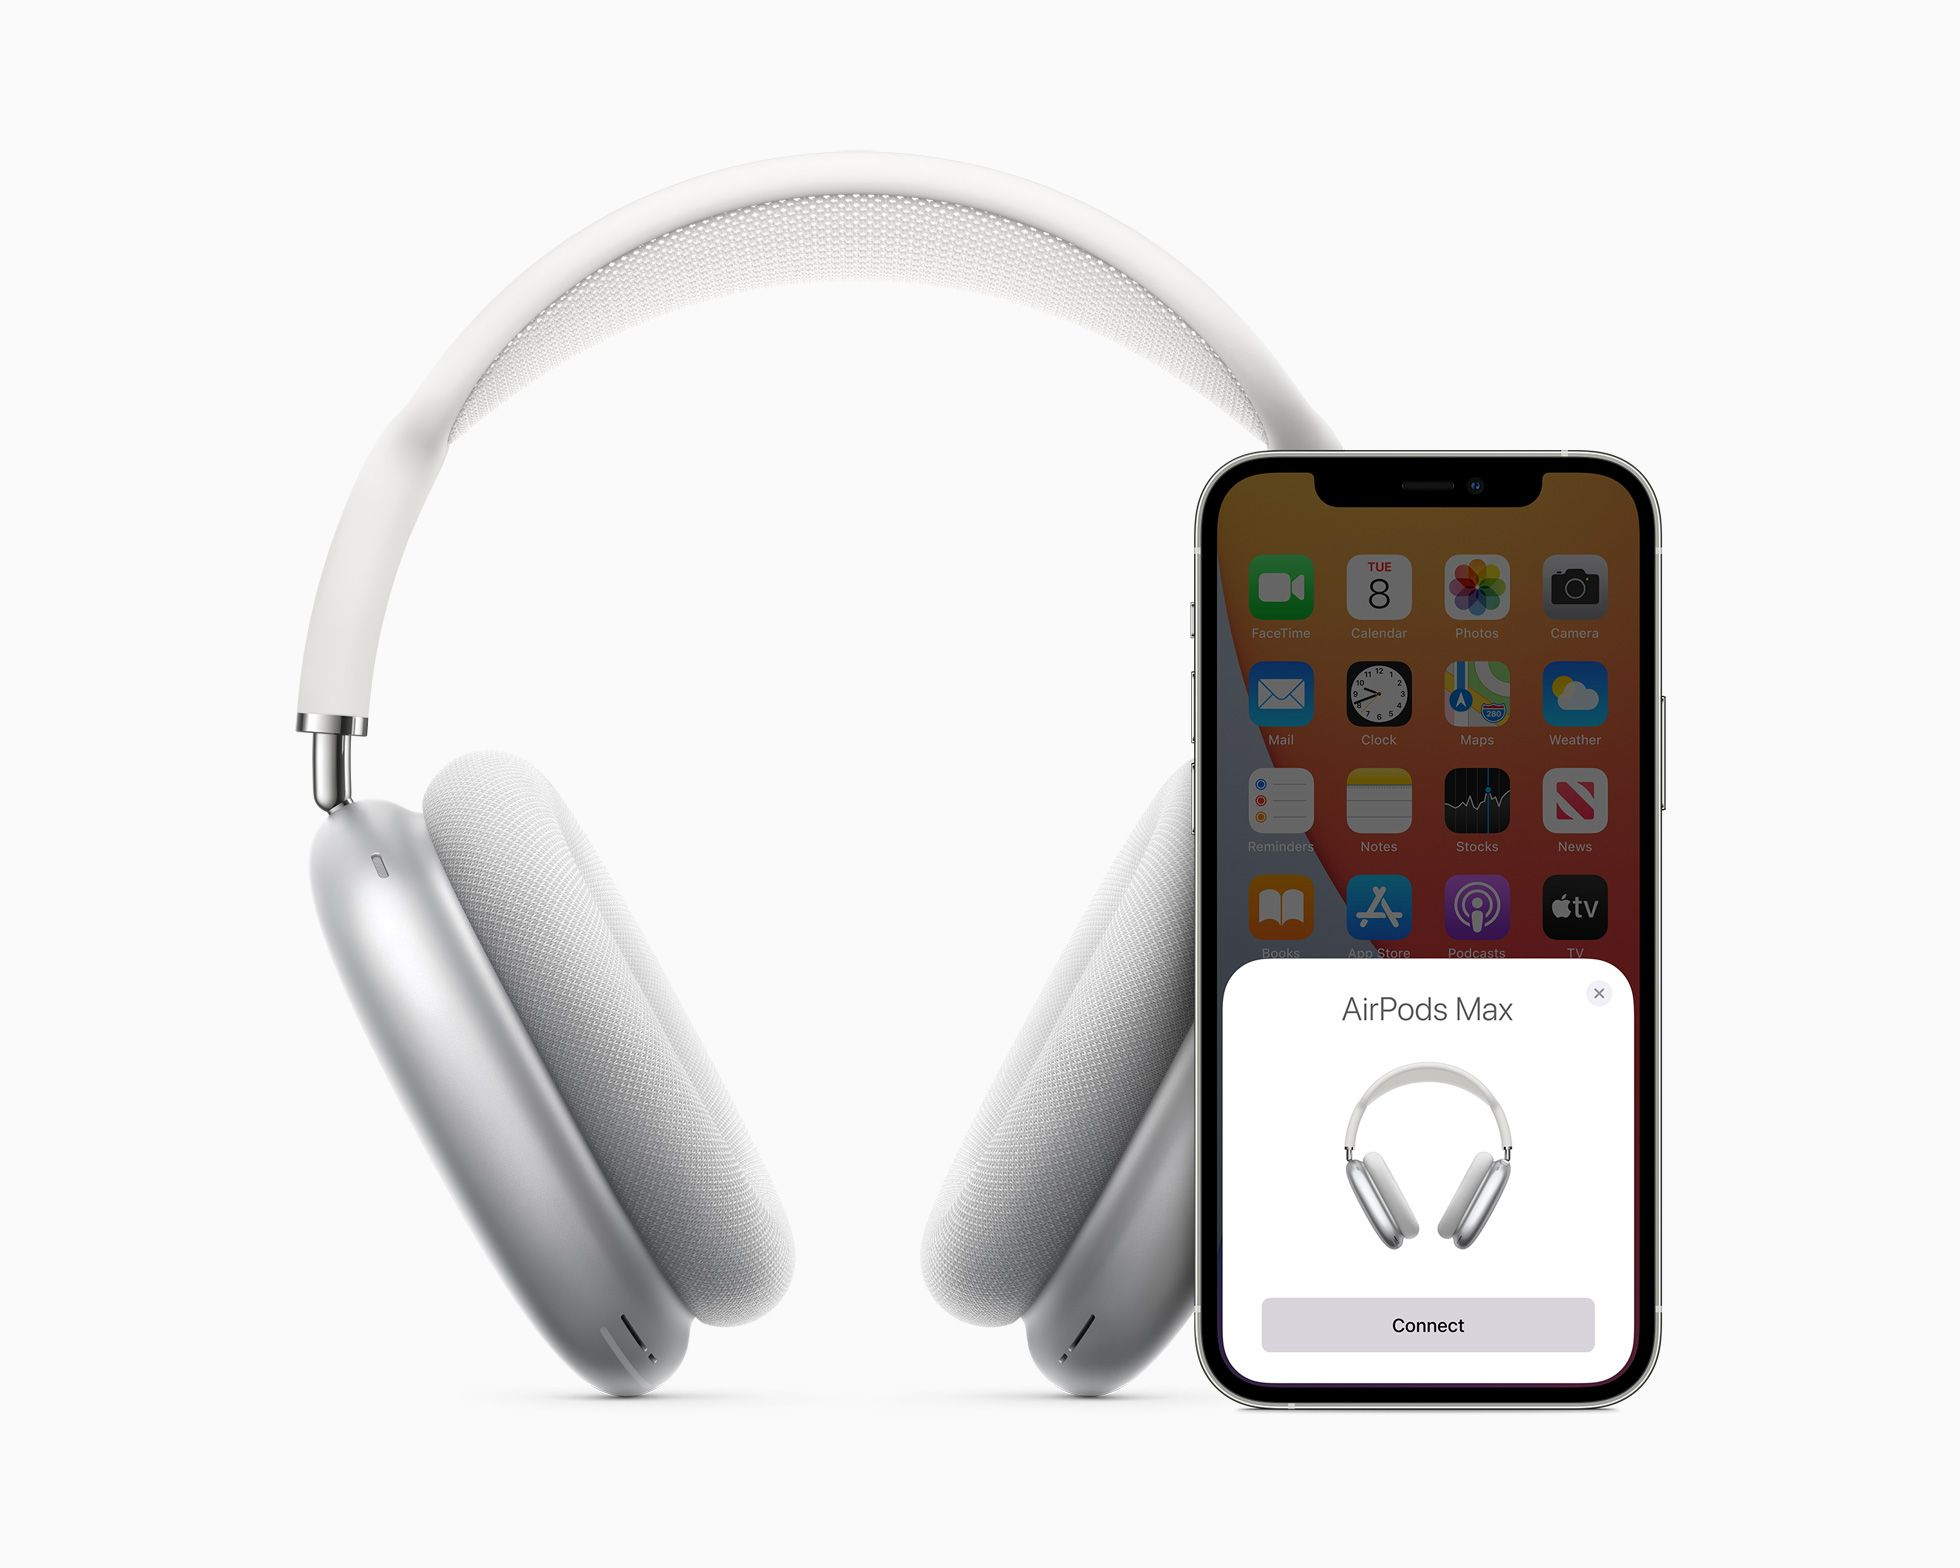 Apple Introduces Airpods Max The Magic Of Airpods In A Stunning Over Ear Design Spatial Audio Noise Cancelling In Ear Headphones